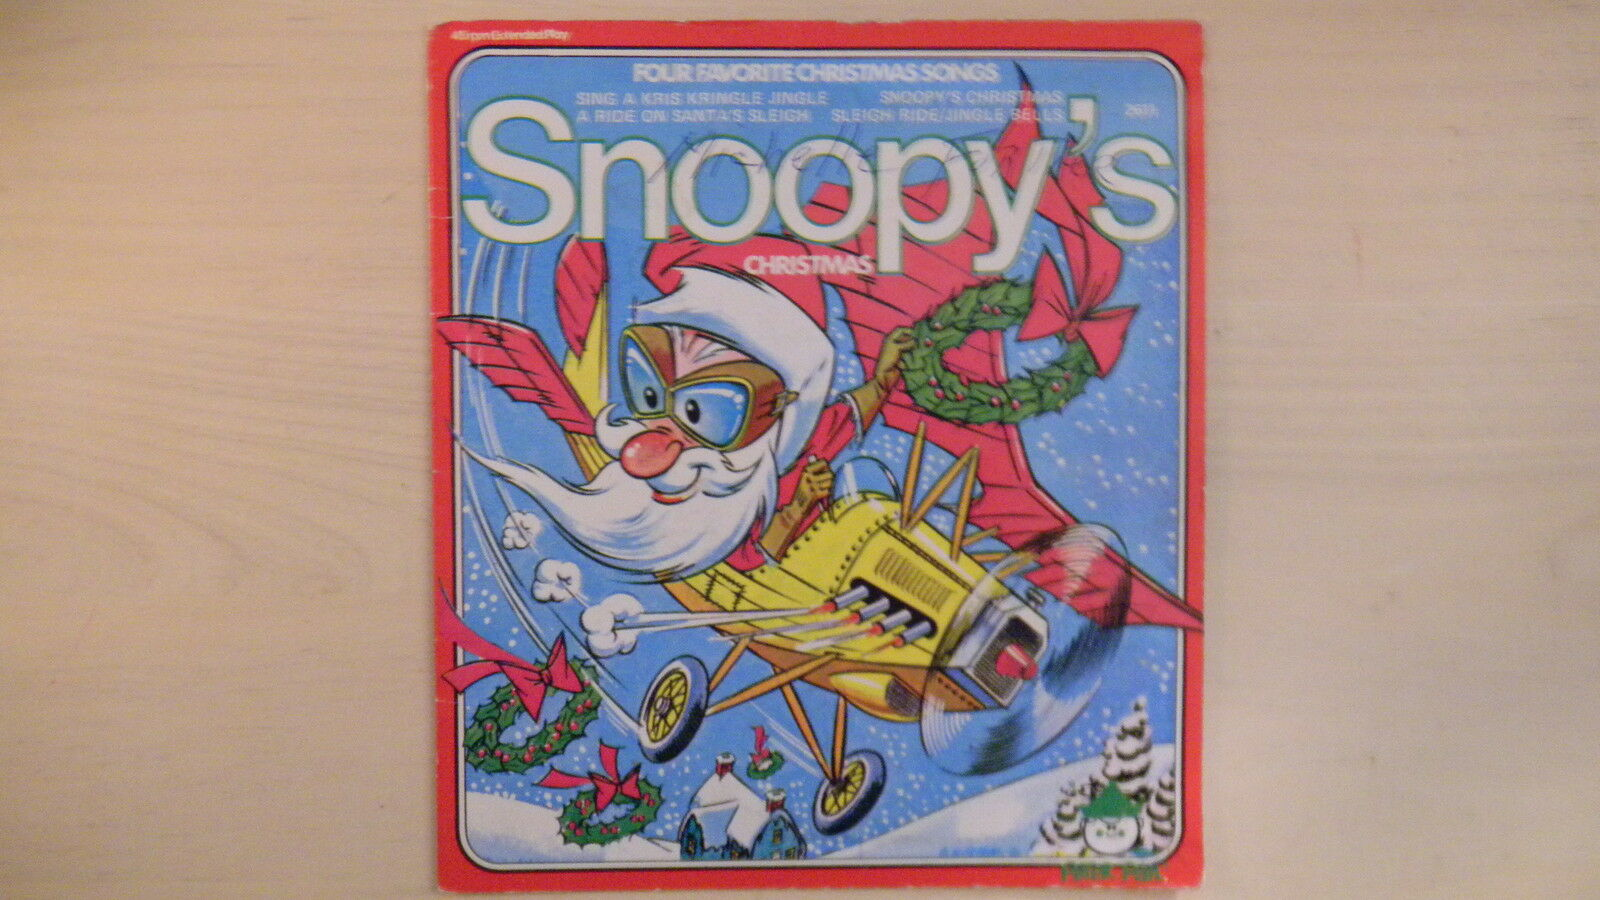 peter pan four favorite christmas songs records snoopys christmas 45 rpm ep 1 of 4only 1 available see more - Snoopy Christmas Song